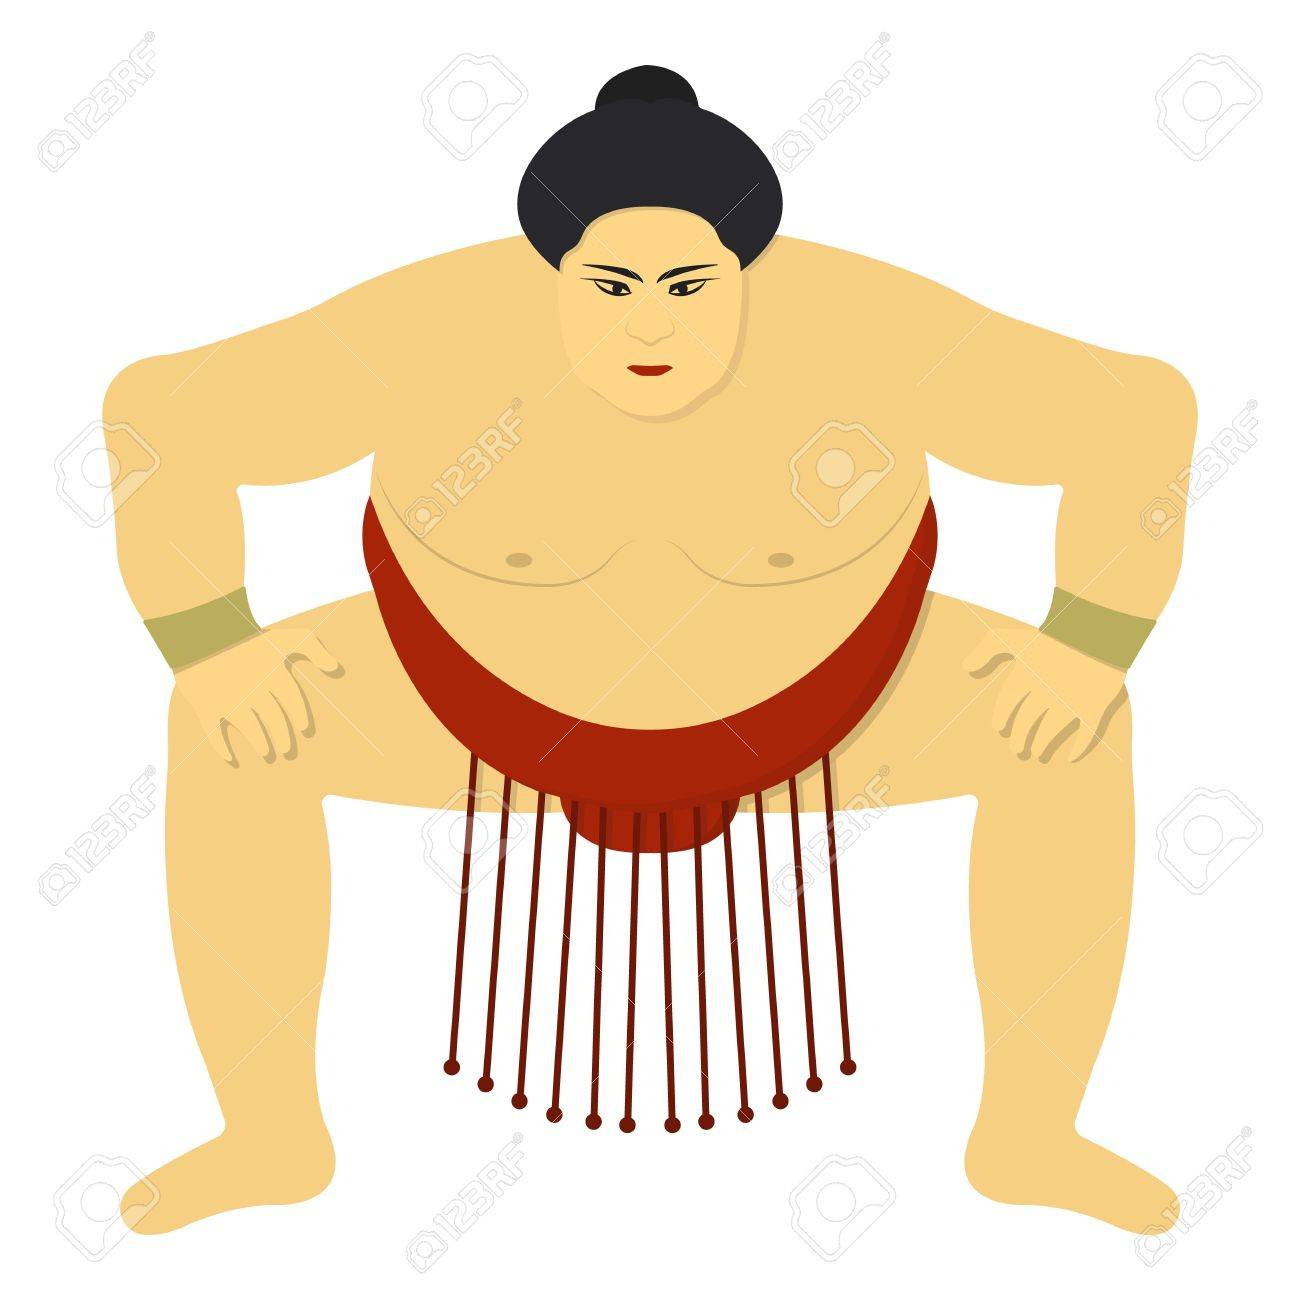 sumo wrestler icon in cartoon style isolated on white background rh 123rf com